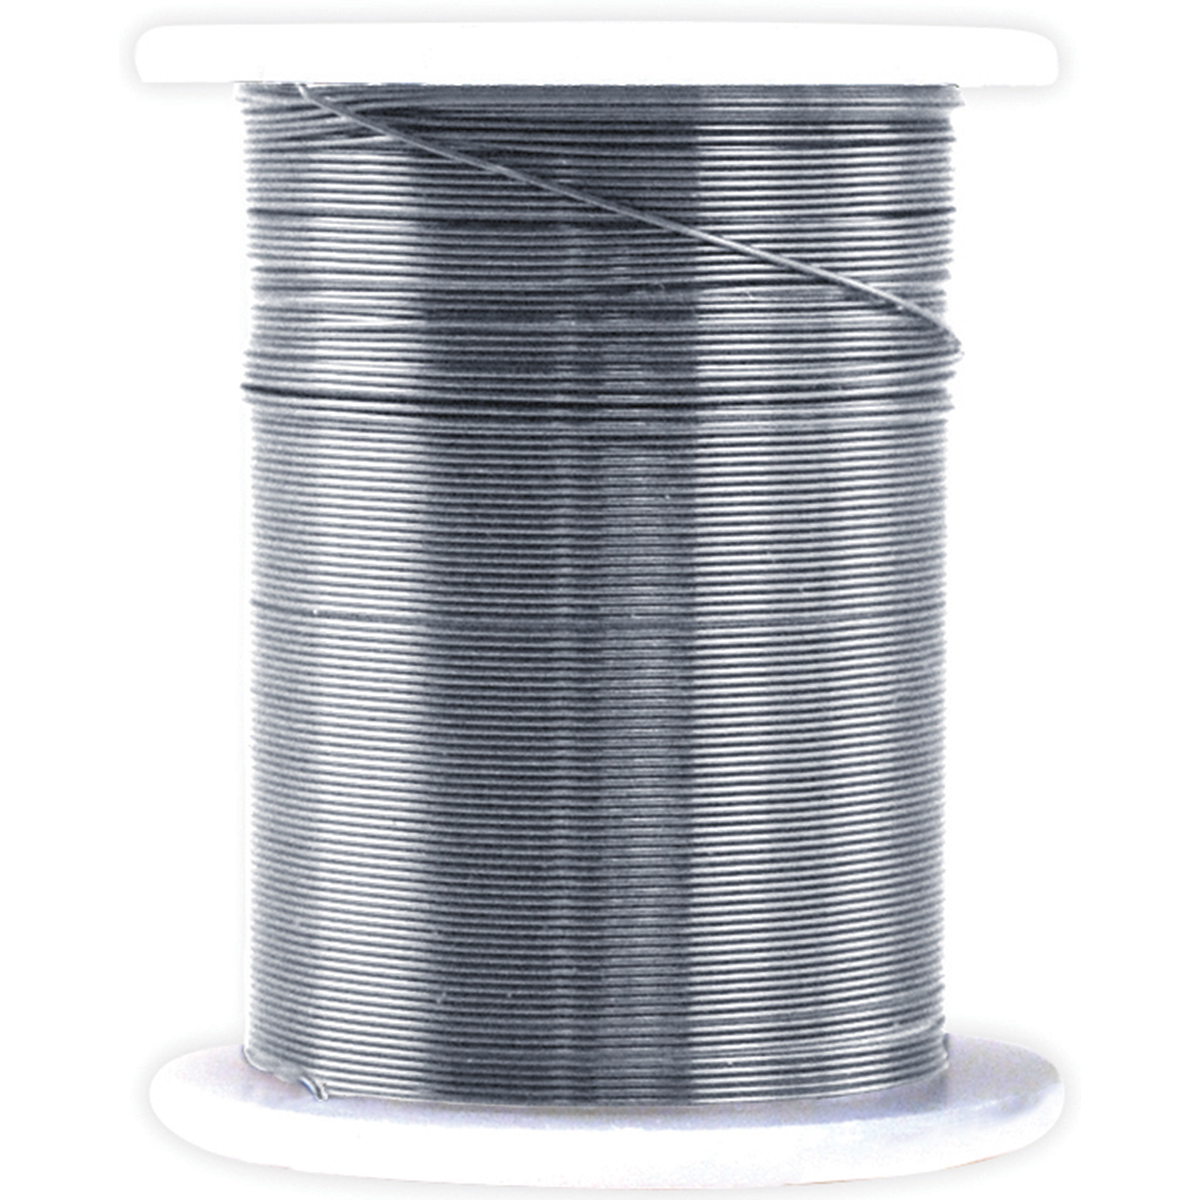 Metallic Beading & Jewelry Wire 28 Gauge 32/Pkg -Silver